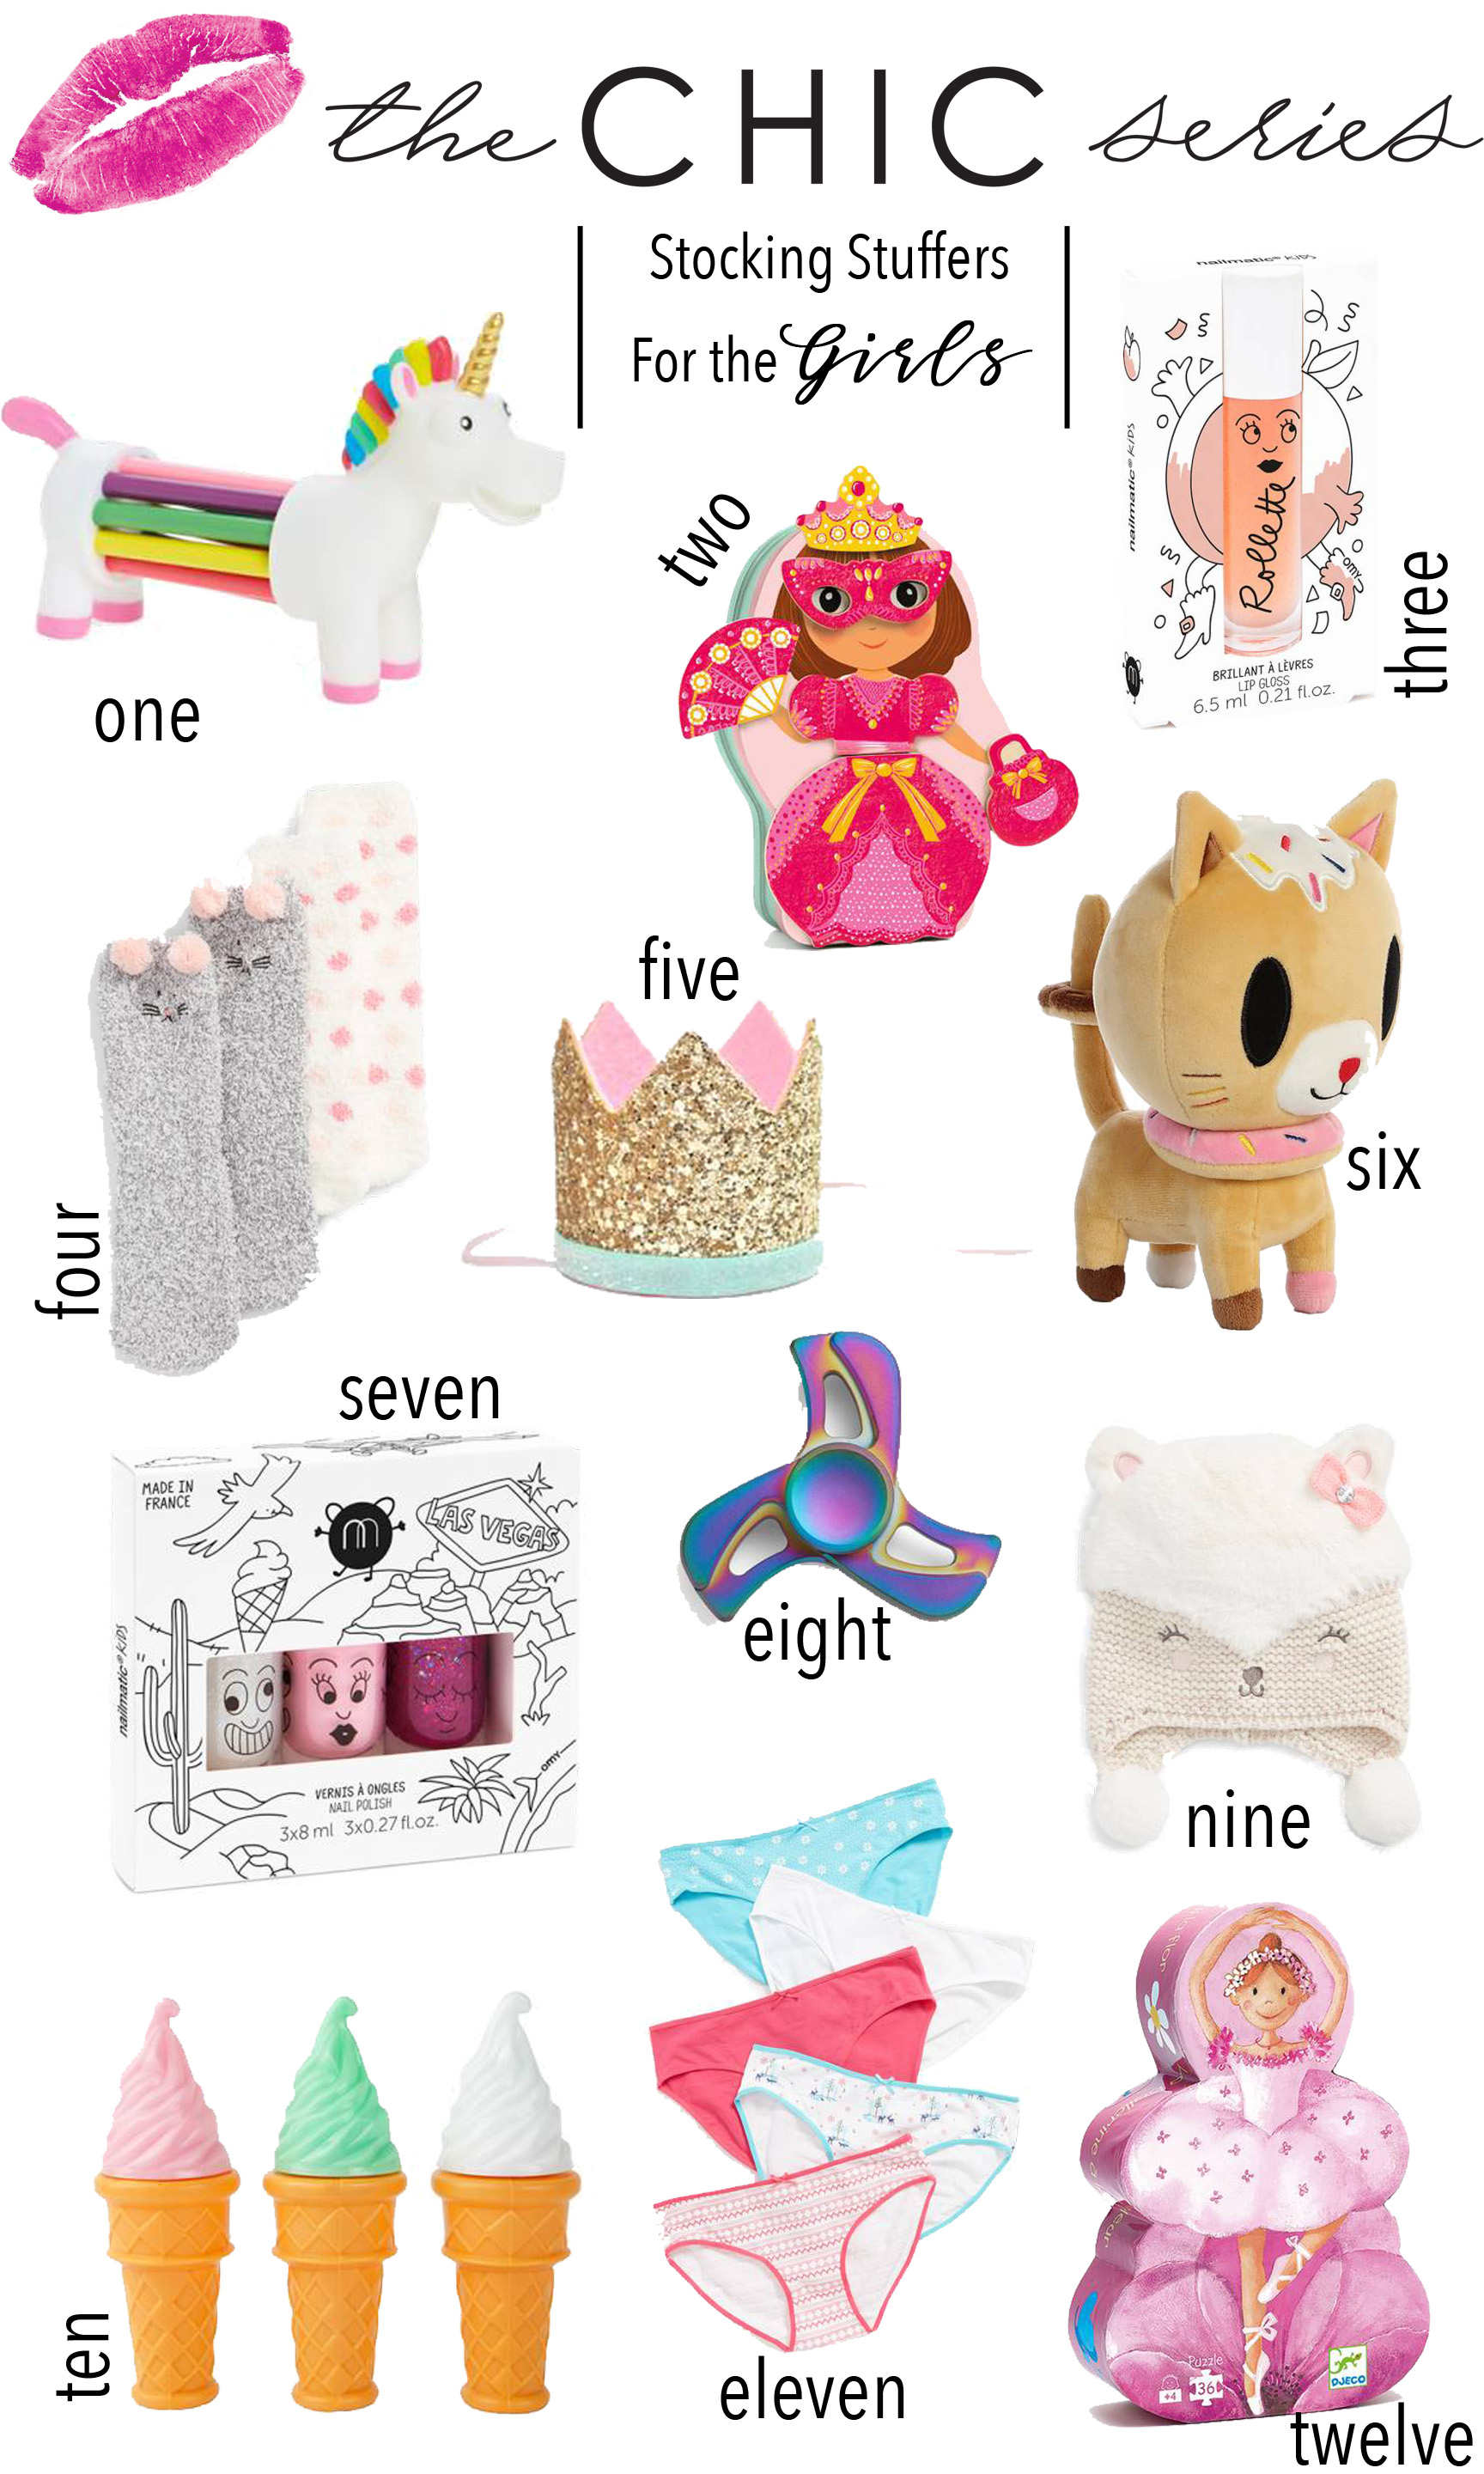 3c5c7d35d10c The Chic Series Stocking Stuffer Ideas For Toddlers